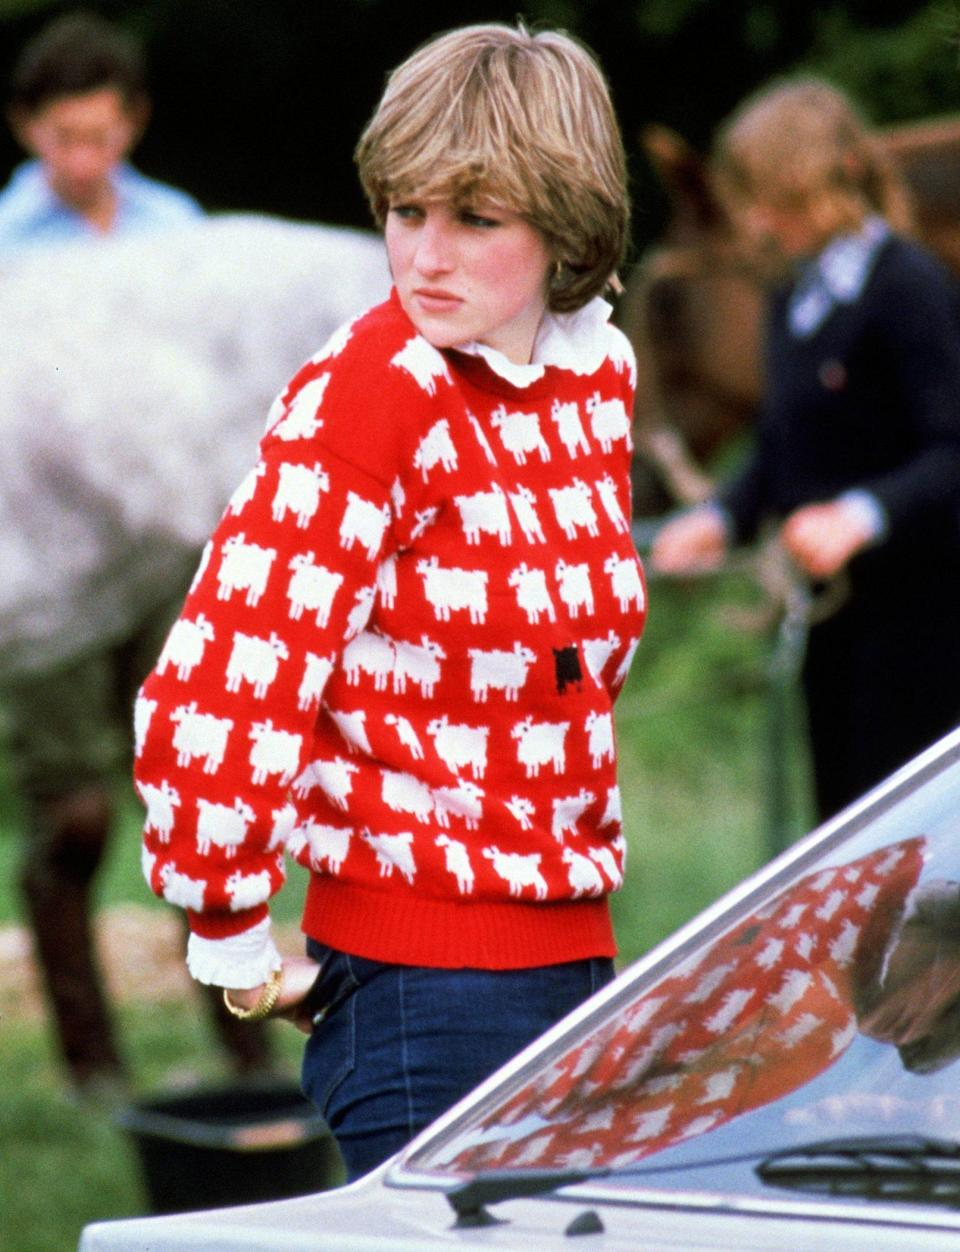 """<p>Princess Diana knew how to send a message through her wardrobe, like her infamous black sheep sweater. But her casual style is perfect for moms on the go, who know the value of layering.</p> <p><strong>Buy It! Warm & Wonderful X Rowing Blazers Women's Sheep Sweater, <a href=""""https://rowingblazers.com/collections/all/products/sheep-sweater-womens"""" rel=""""sponsored noopener"""" target=""""_blank"""" data-ylk=""""slk:$295"""" class=""""link rapid-noclick-resp"""">$295</a></strong></p> <p><strong>Get the Look!<br></strong><strong>Asos Oversized Sheep Sweater, <a href=""""https://www.asos.com/us/asos-design/asos-design-oversized-textured-sweater-with-sheep-design-in-sage-green/prd/22104771"""" rel=""""nofollow noopener"""" target=""""_blank"""" data-ylk=""""slk:$43"""" class=""""link rapid-noclick-resp"""">$43</a><br></strong><strong>Zara Jacquard Knit Sweater, <a href=""""https://www.zara.com/us/en/jacquard-knit-sweater-p04331012.html"""" rel=""""sponsored noopener"""" target=""""_blank"""" data-ylk=""""slk:$50"""" class=""""link rapid-noclick-resp"""">$50</a><br></strong><strong>13th Street Design Crewneck Sweatshirt, <a href=""""https://www.teepublic.com/crewneck-sweatshirt/8690725-the-black-sheep"""" rel=""""sponsored noopener"""" target=""""_blank"""" data-ylk=""""slk:$38"""" class=""""link rapid-noclick-resp"""">$38</a></strong></p>"""